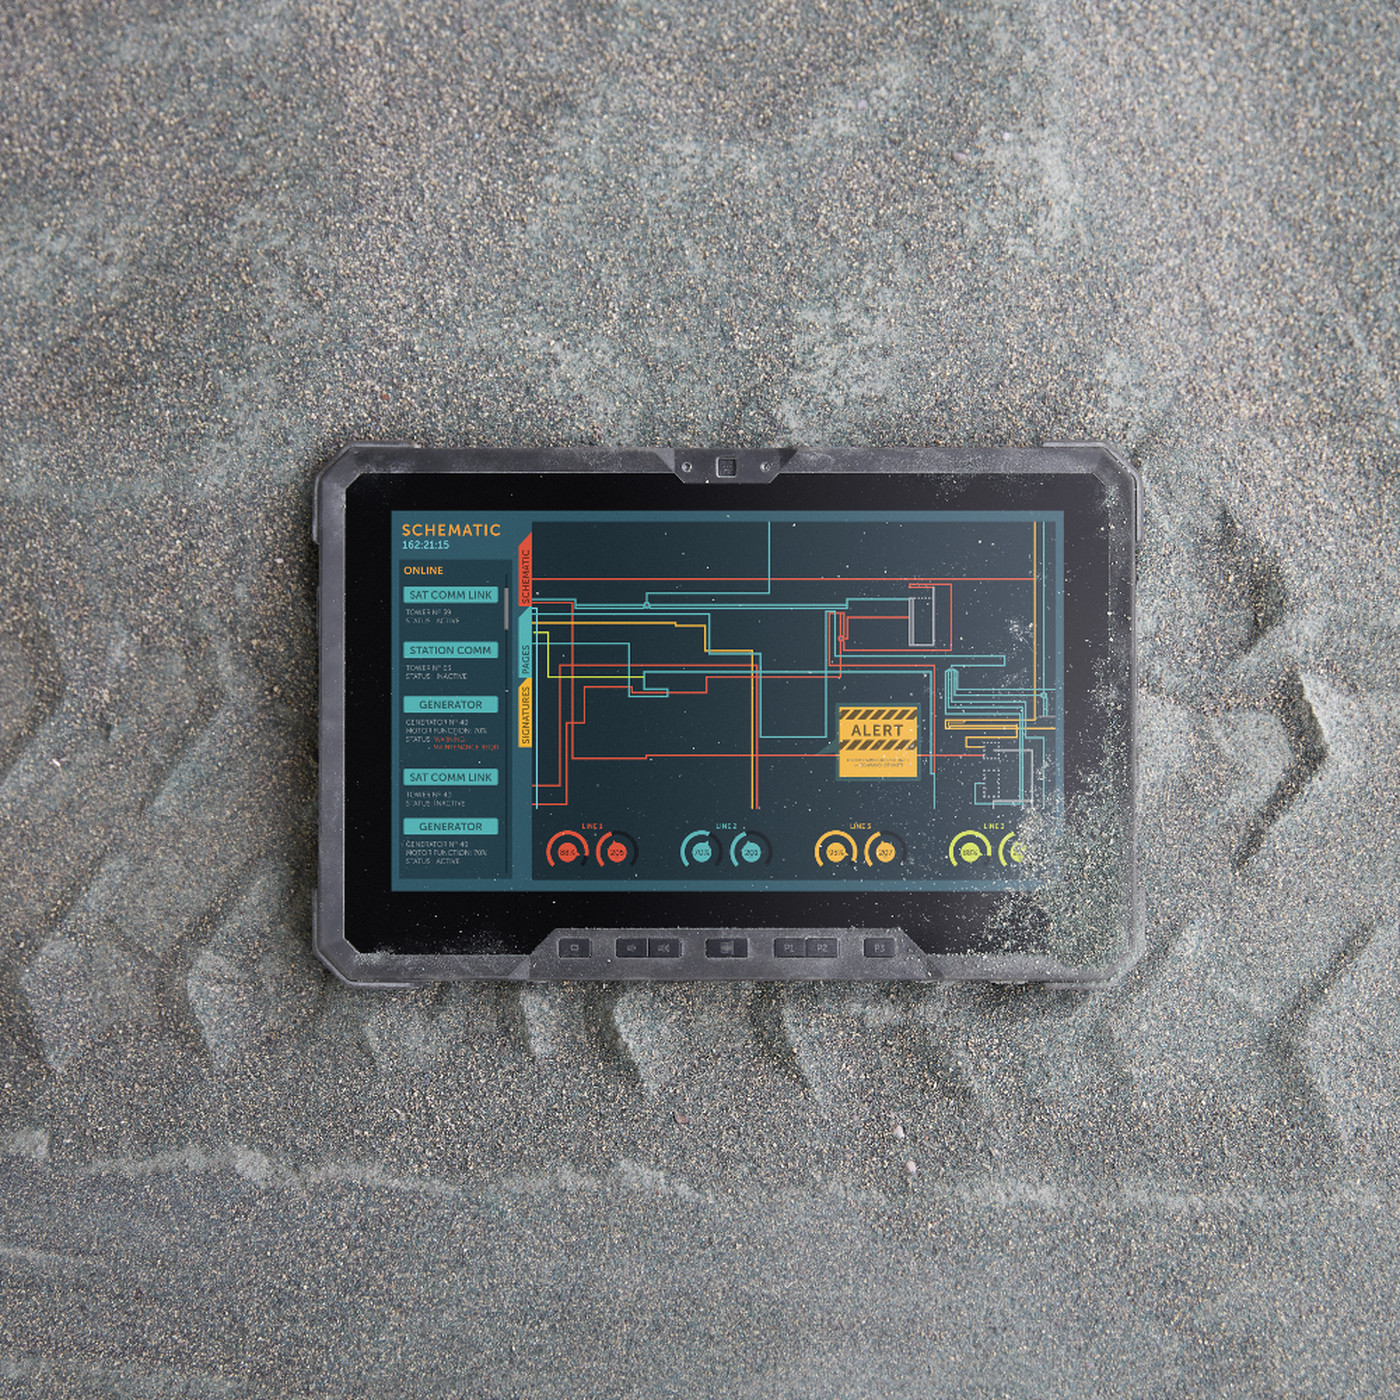 Dells First Rugged Tablet Runs Windows And Can Be Thrown Out Of One Panasonic Ptz Camera Wiring Diagram Too The Verge